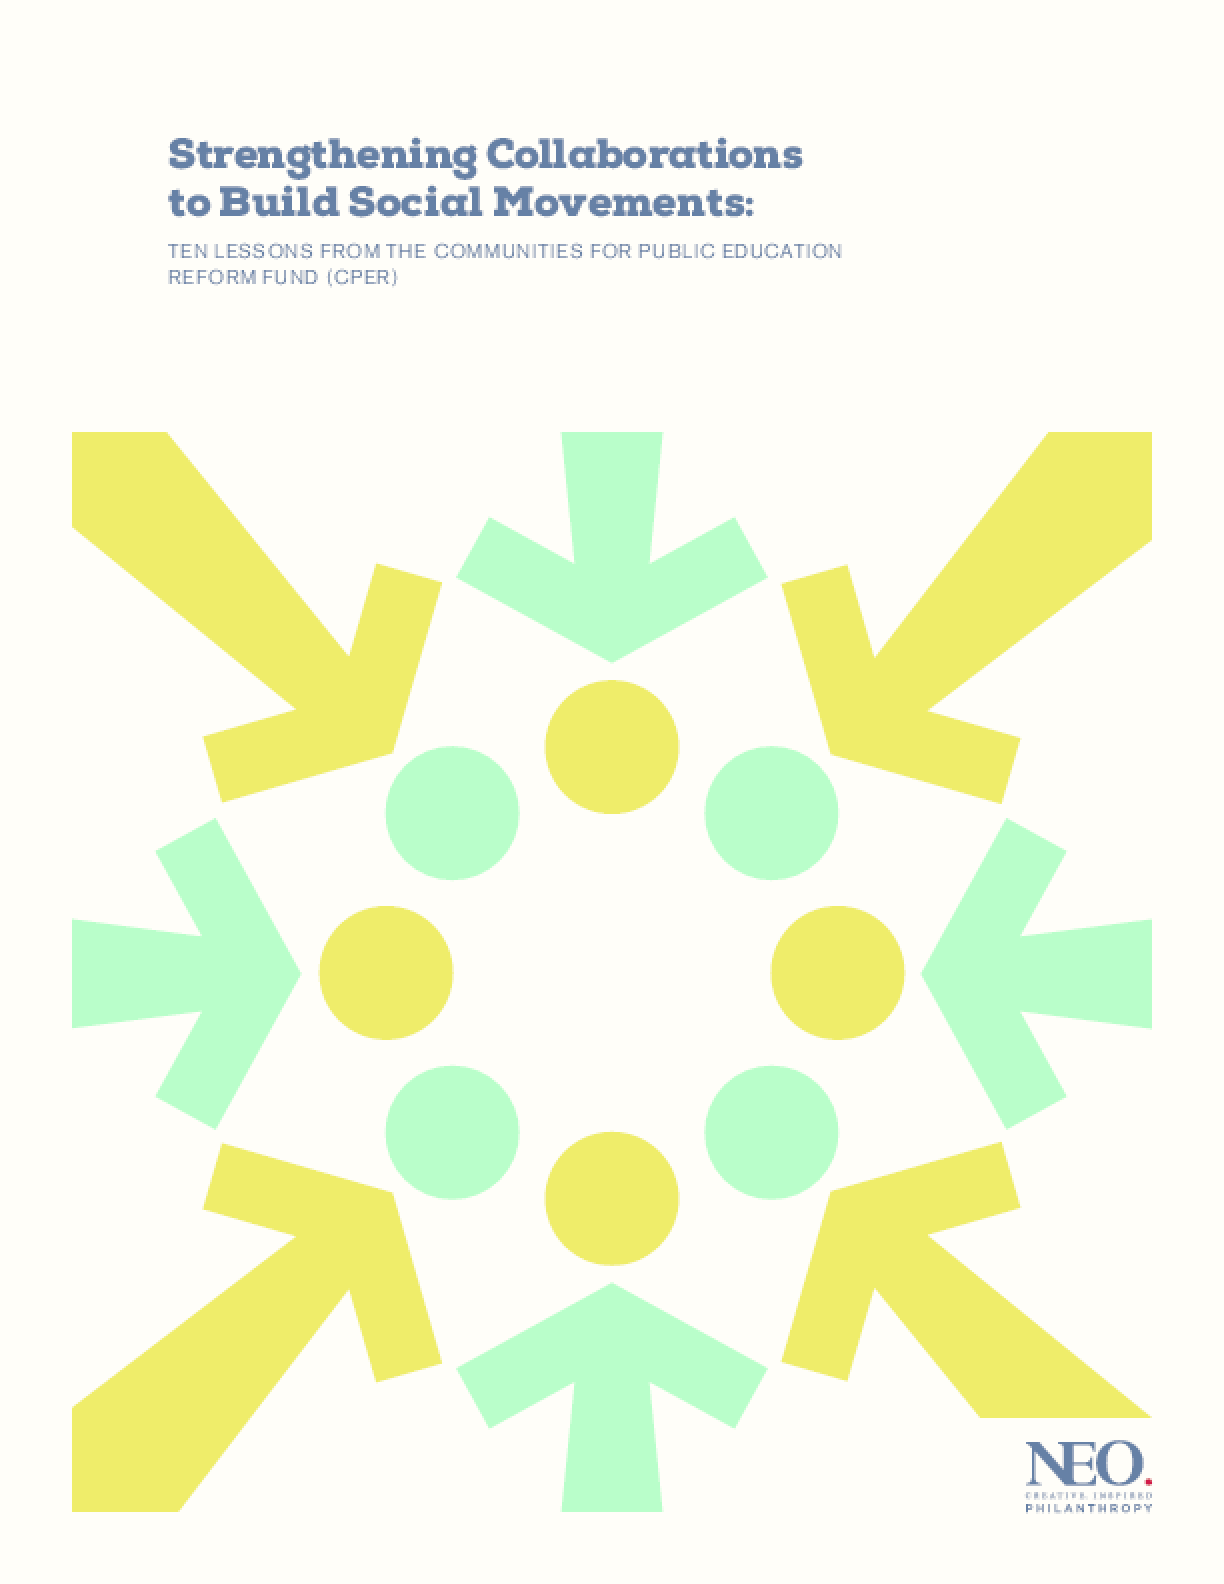 Strengthening Collaborations to Build Social Movements: Ten Lessons from the Communities for Public Education Reform Fund (CPER)